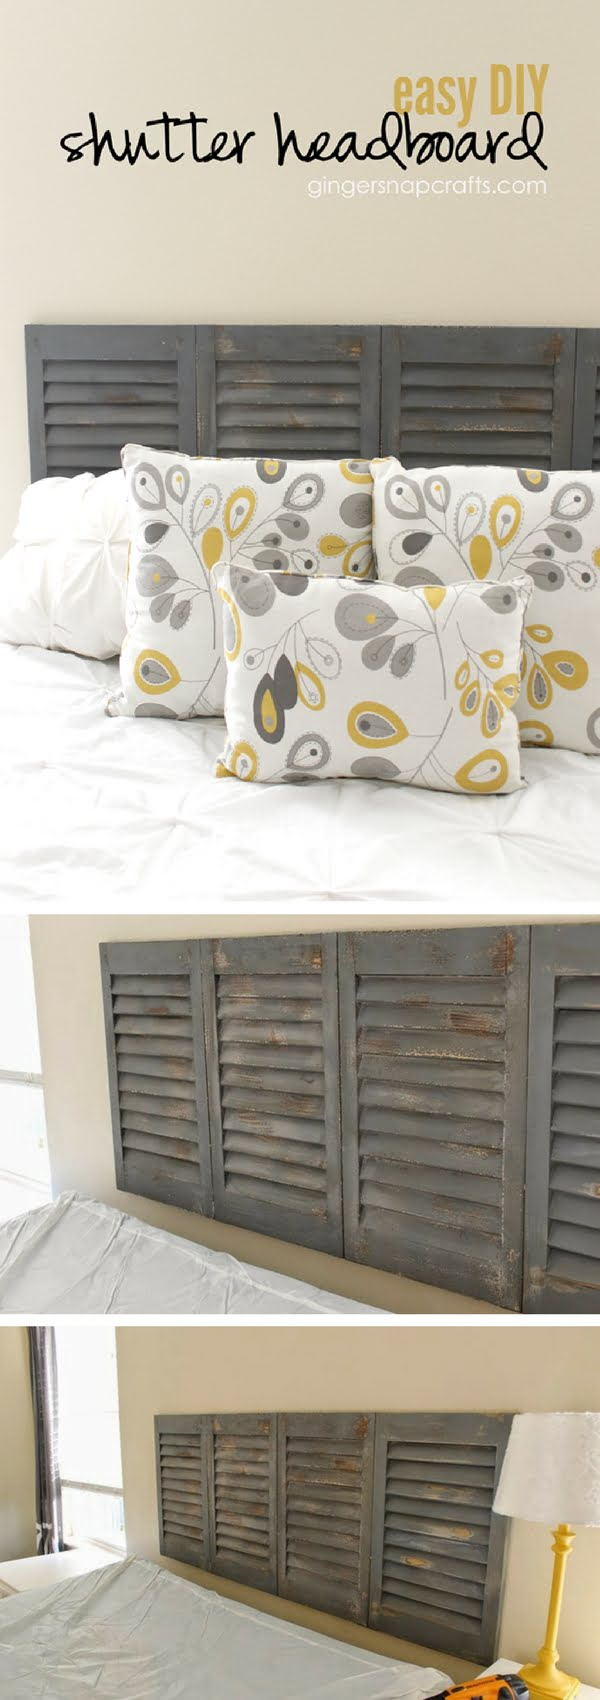 Check out how to make an easy DIY headboard from old shutters